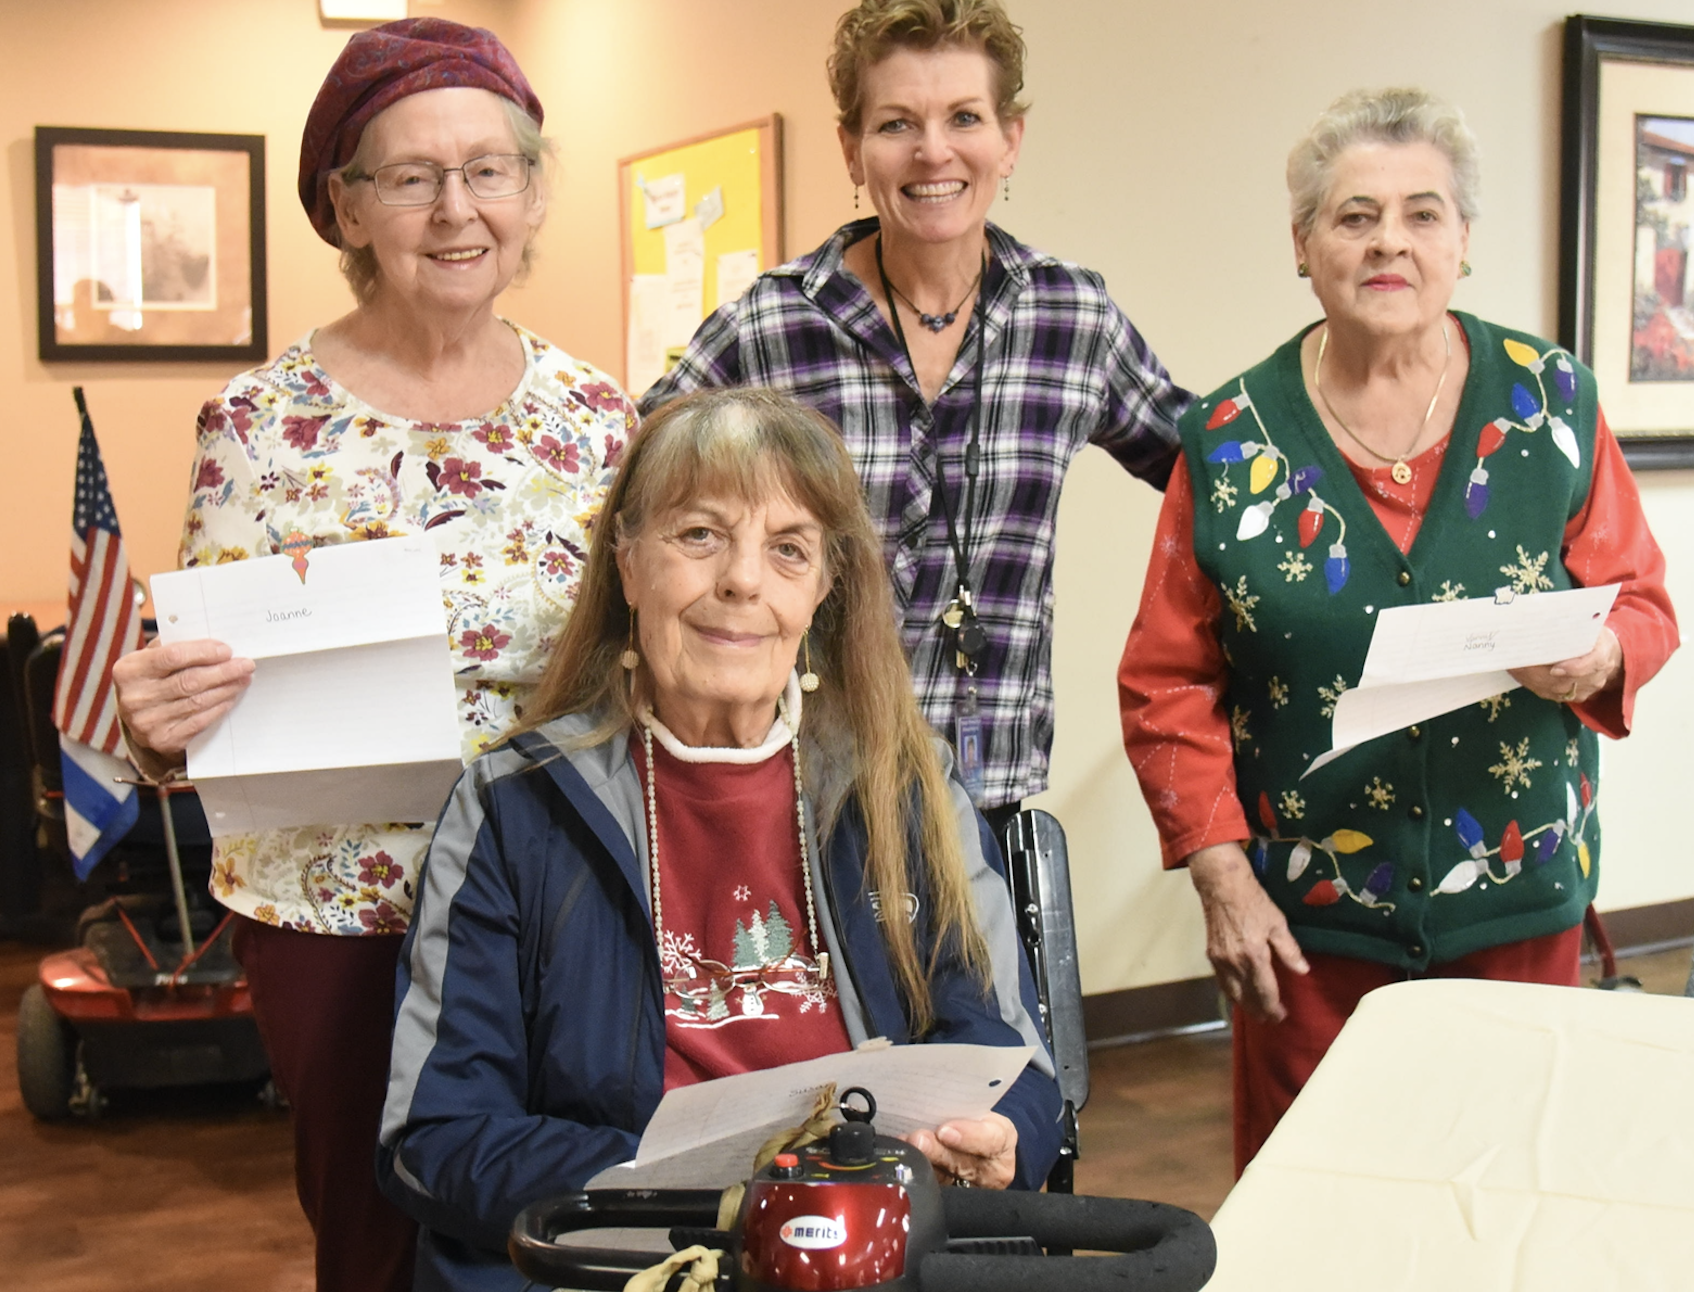 Amy Garza, The Tempe Elementary School District Employee Who Developed The Pen Pals For Seniors Program, Pictured In The Middle With Seniors Involved In The Program. Photo Courtesy Tempe Elementary School District